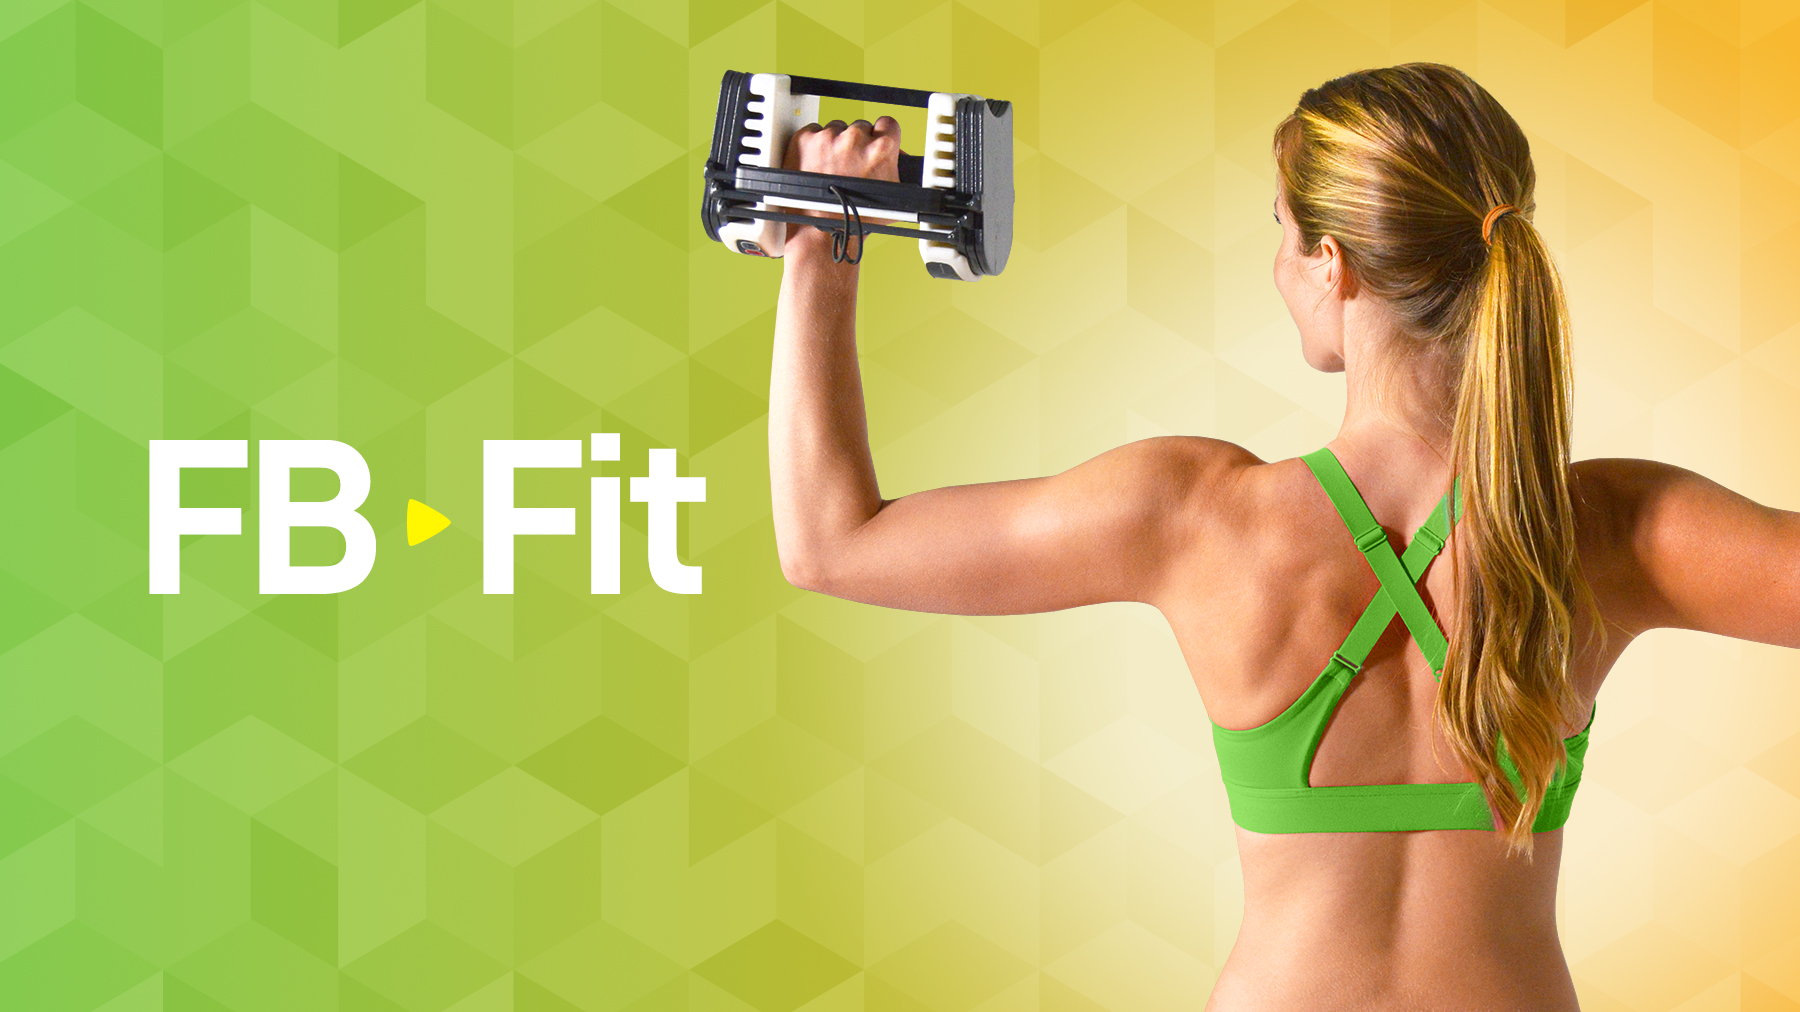 Fb Fit 8 Week Fat Loss Program To Lose Weight Build Lean Muscle